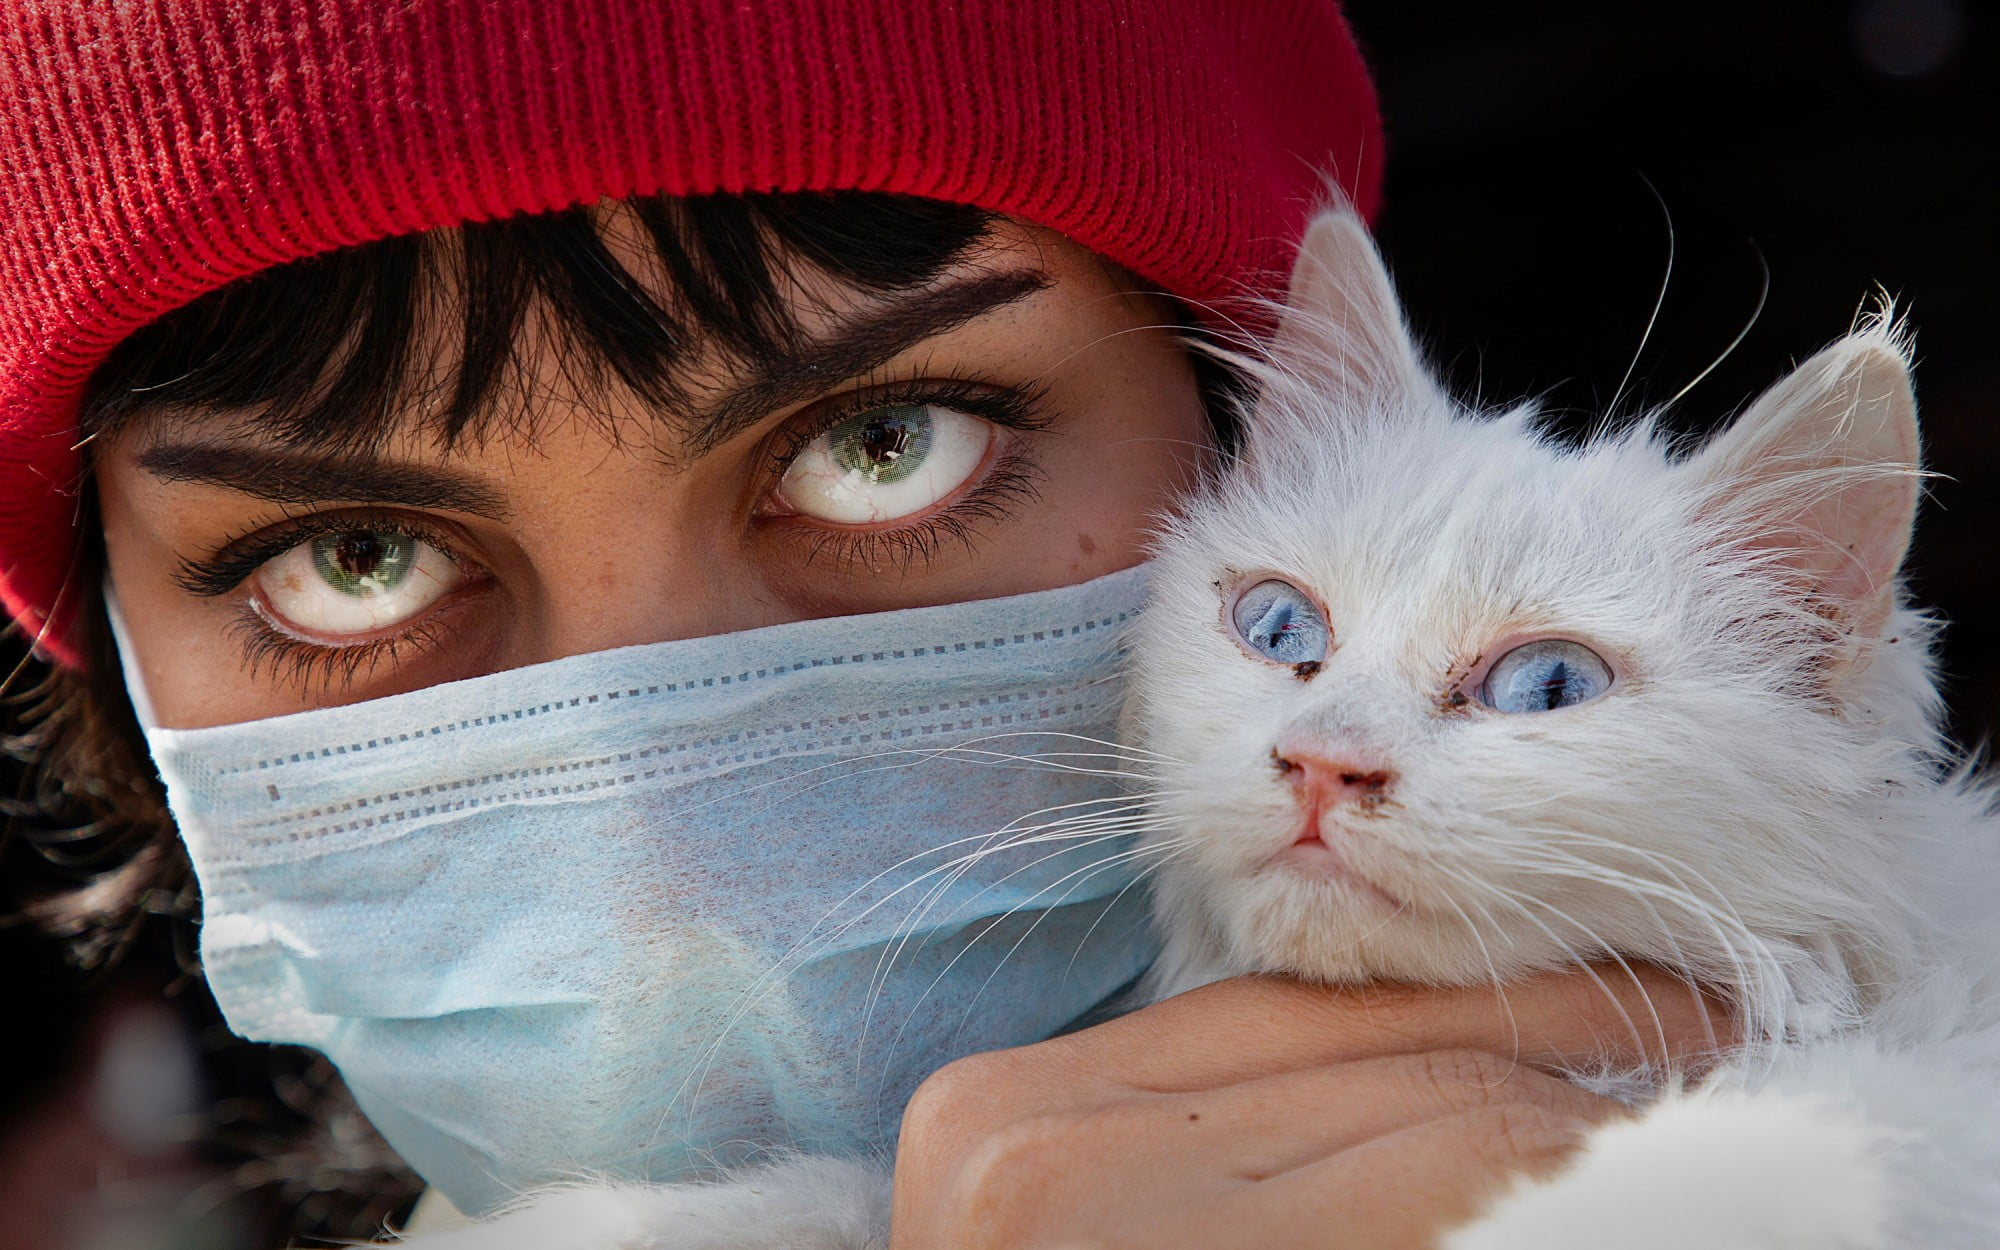 colored contact lenses in pandemic